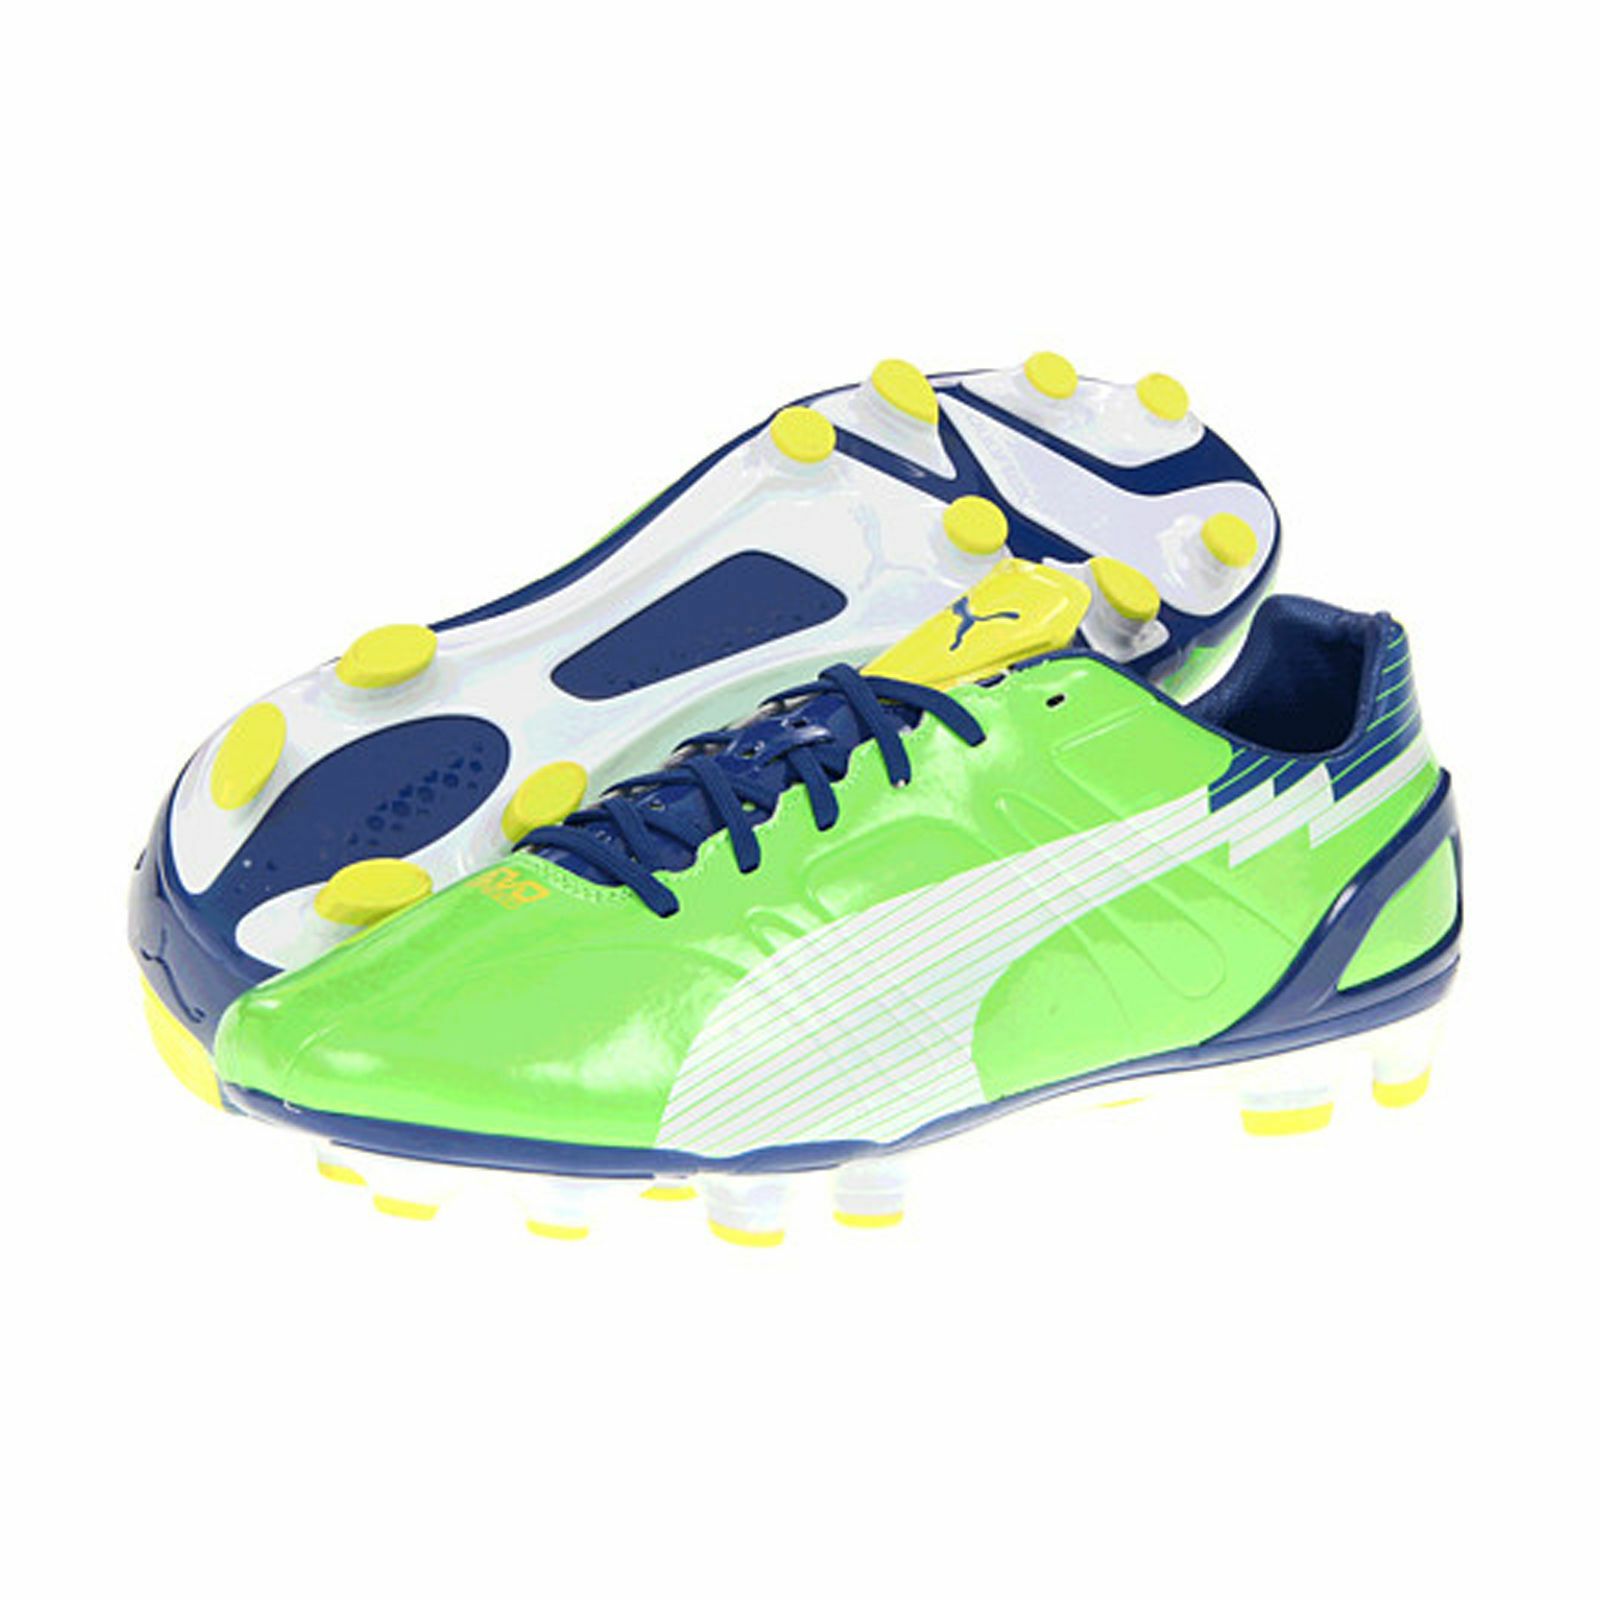 Details about Puma Evospeed 3FG Men s Football Boots Shoes New -  Green White Yellow 1fa47c7bcd29